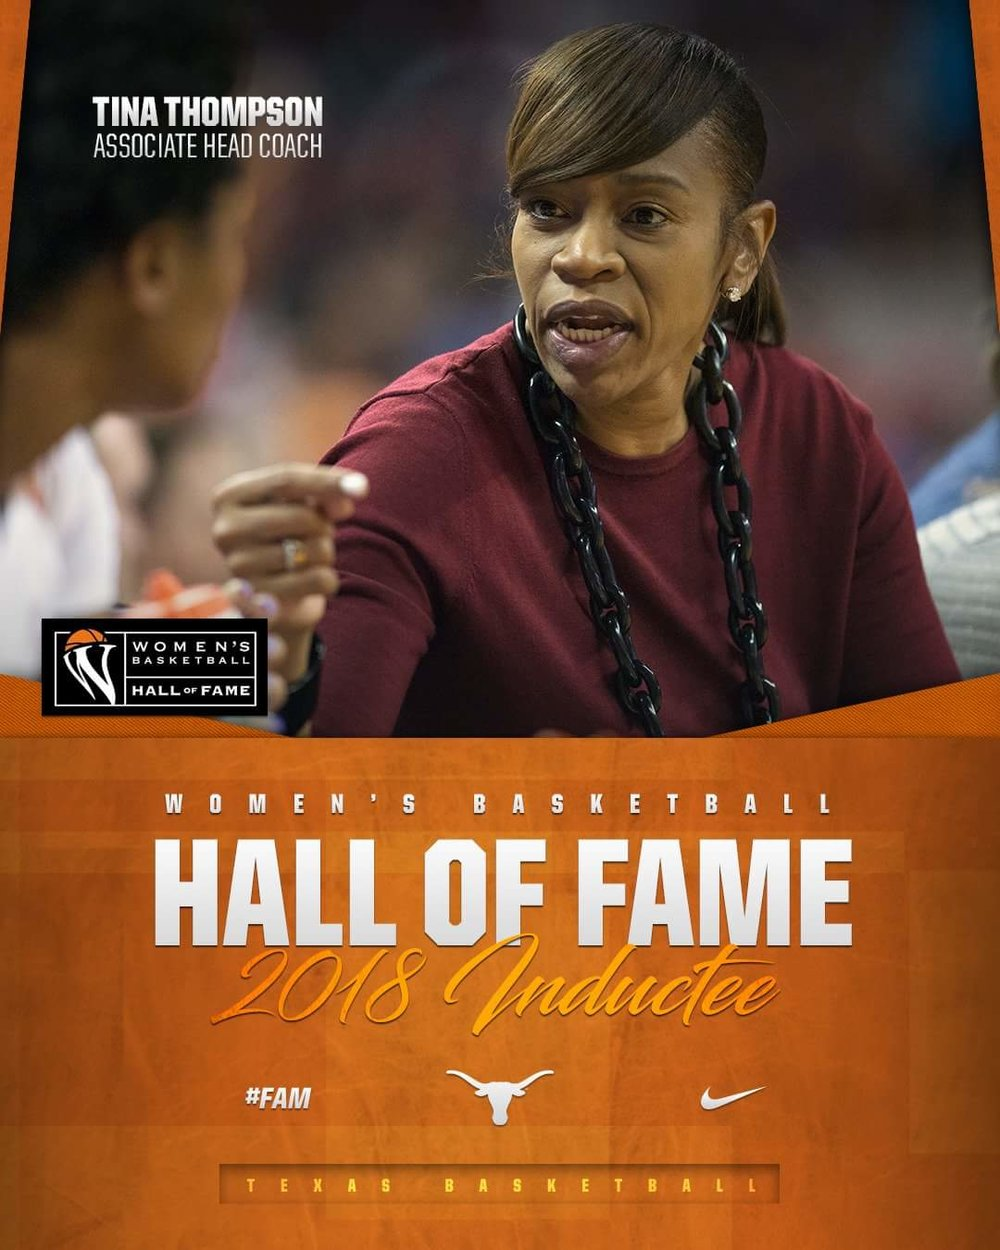 Tina Thompson inducted 2018